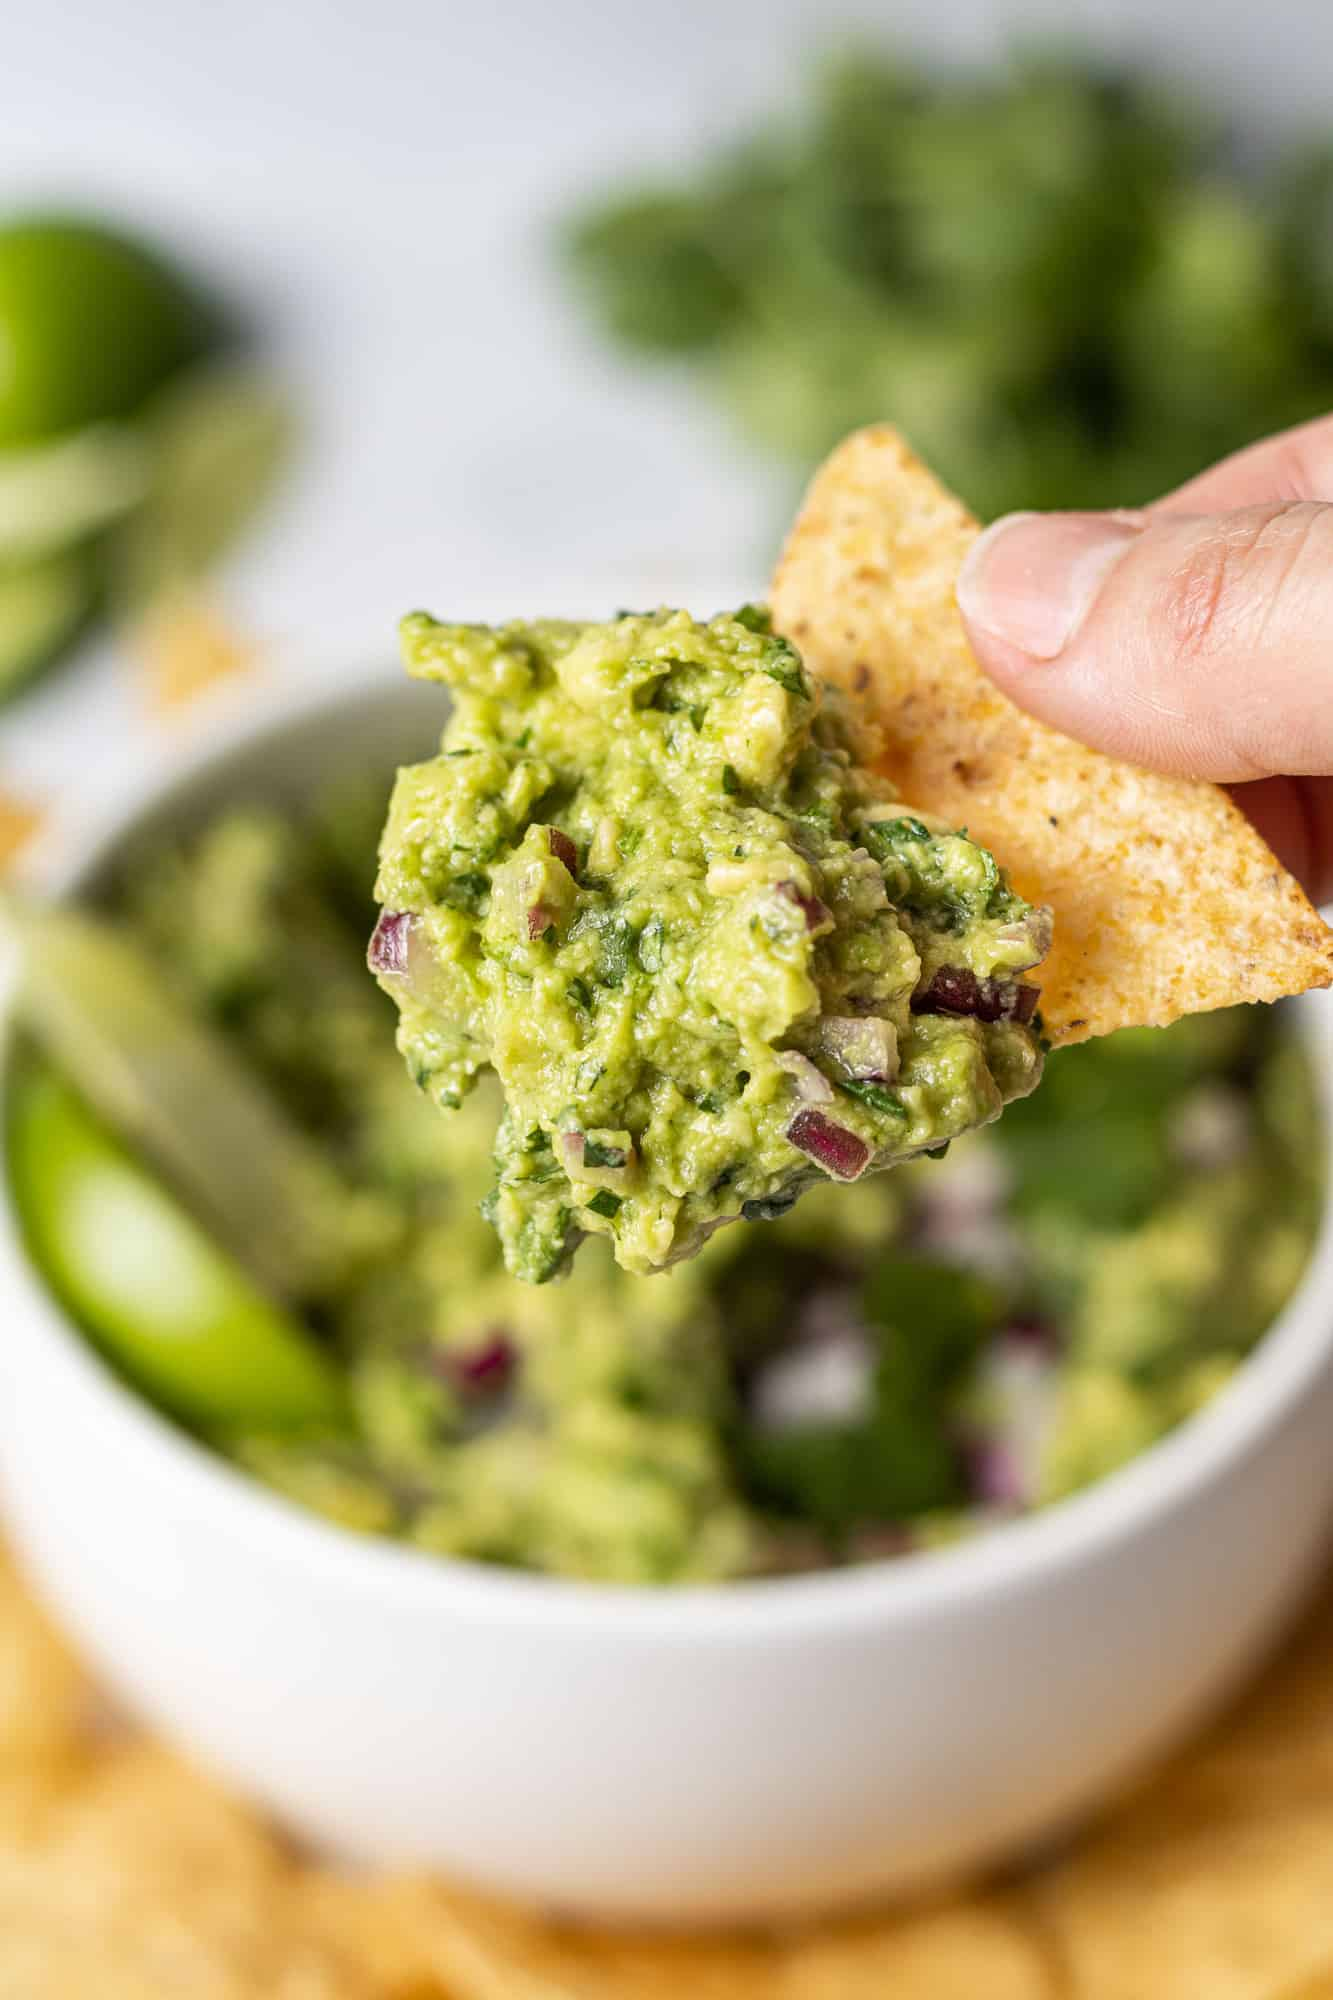 Guacamole on a chip held in a hand.